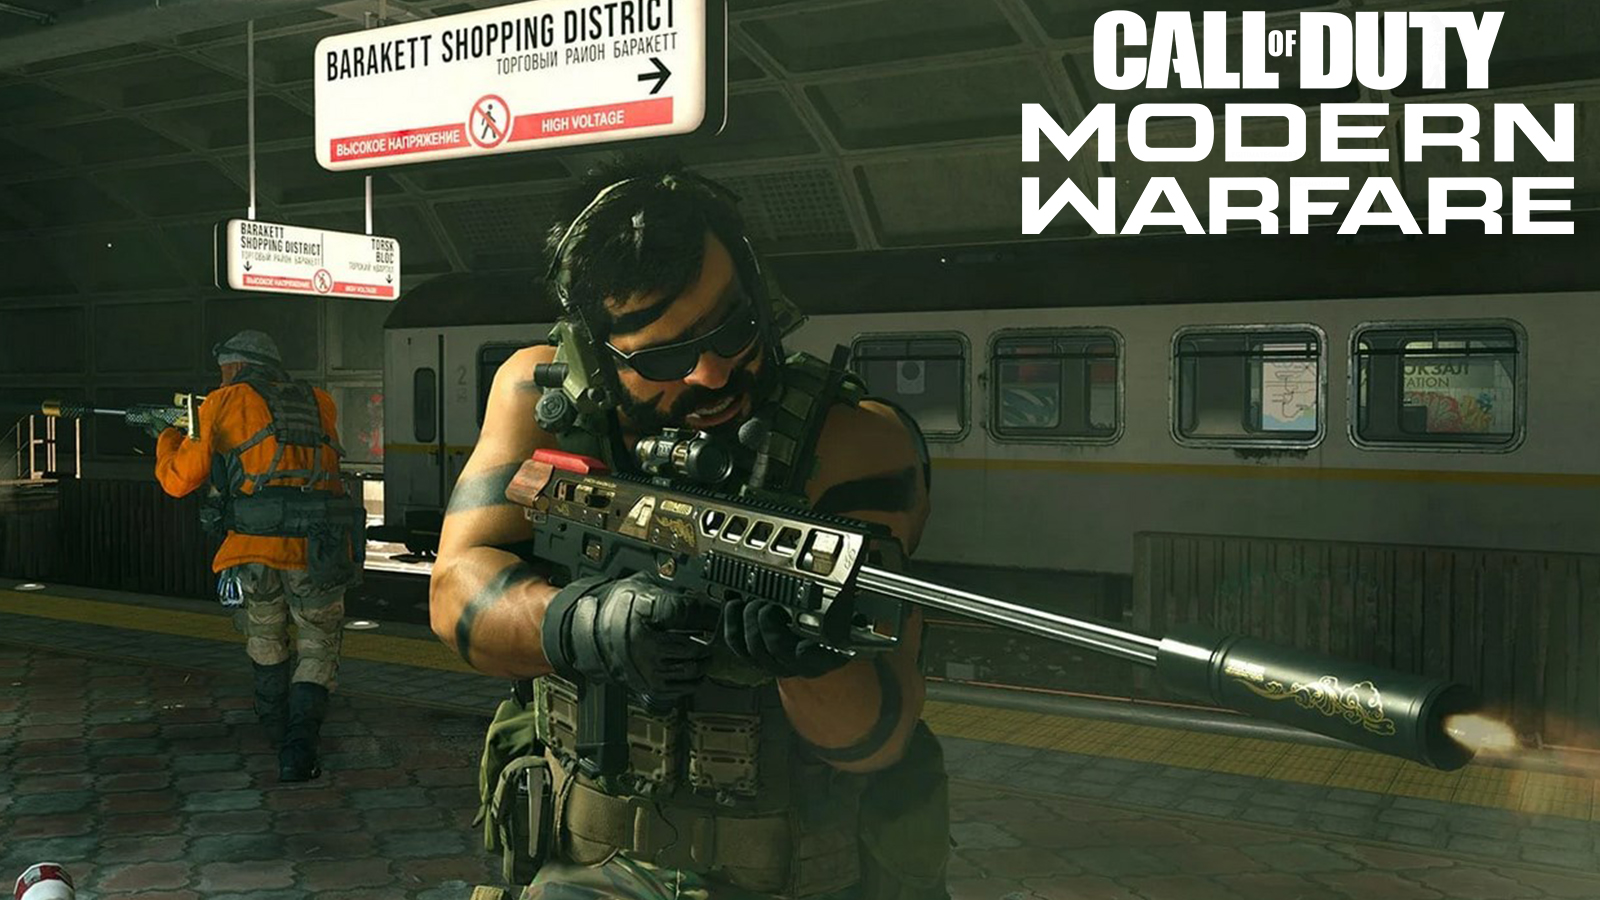 Warzone player using the SPR-208 sniper rifle.